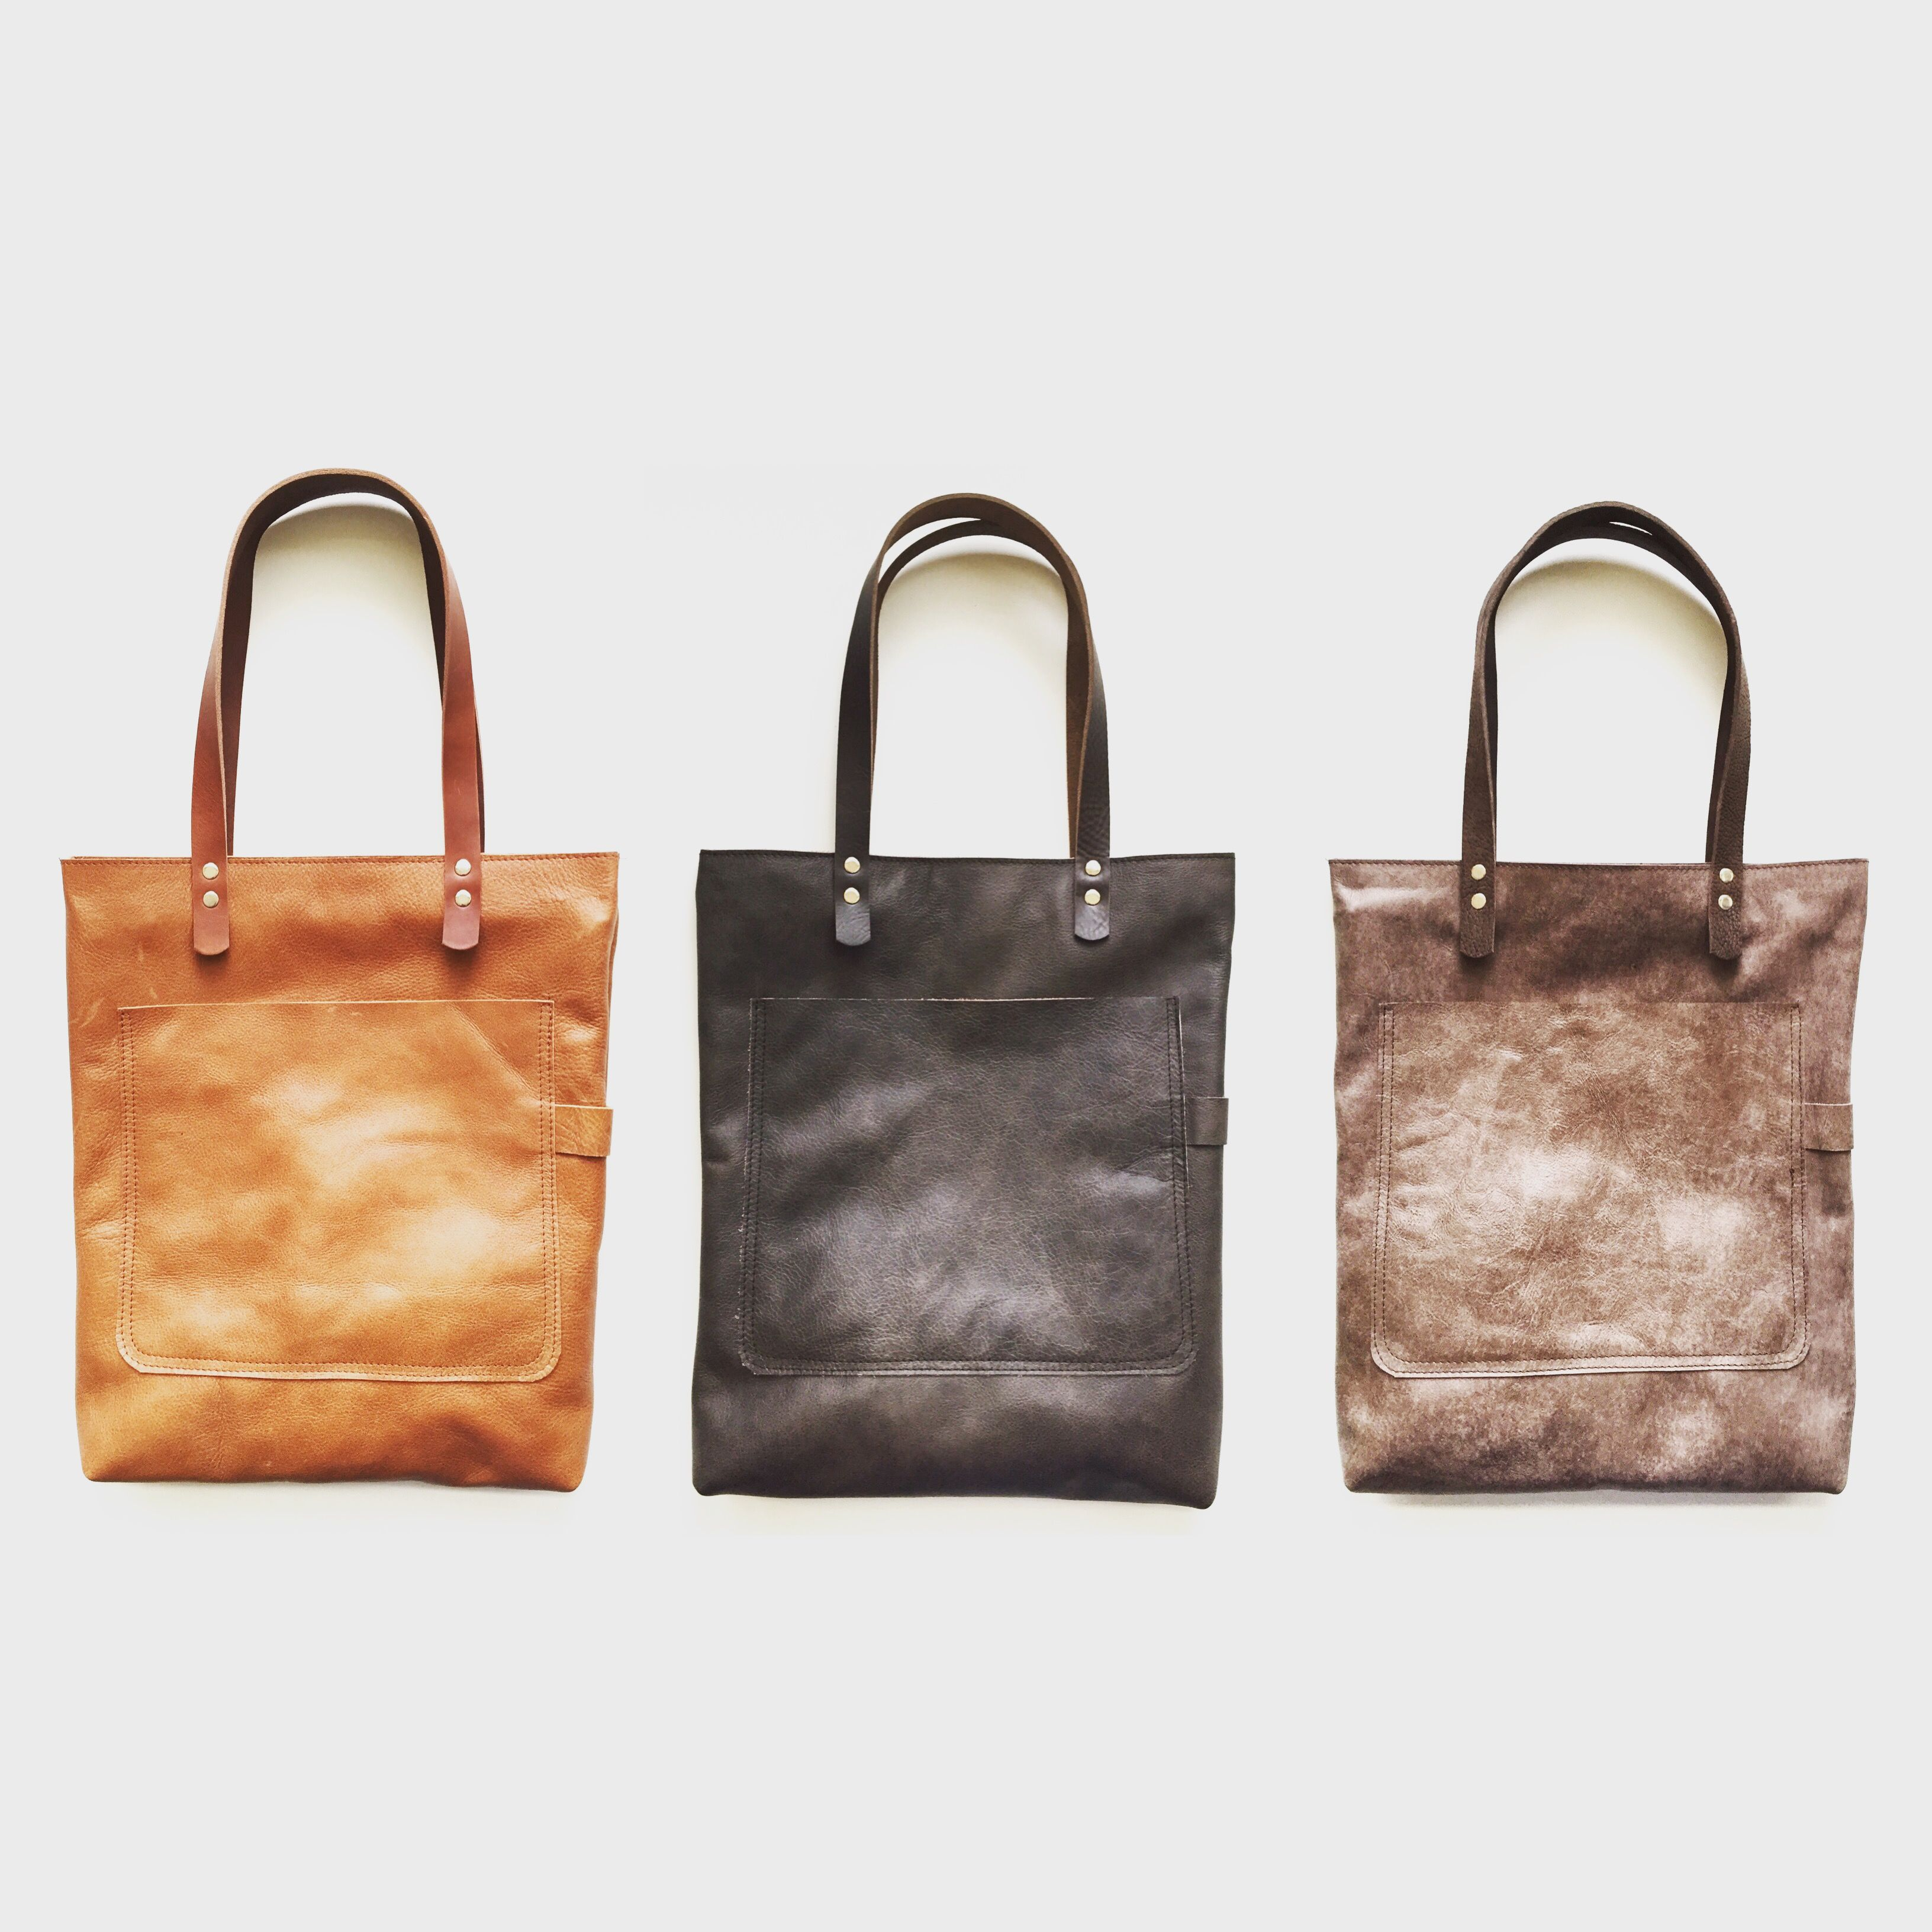 Totes Bobby Shopping Handmade Bags Made BagsLeather In Holland 0wknPOX8NZ